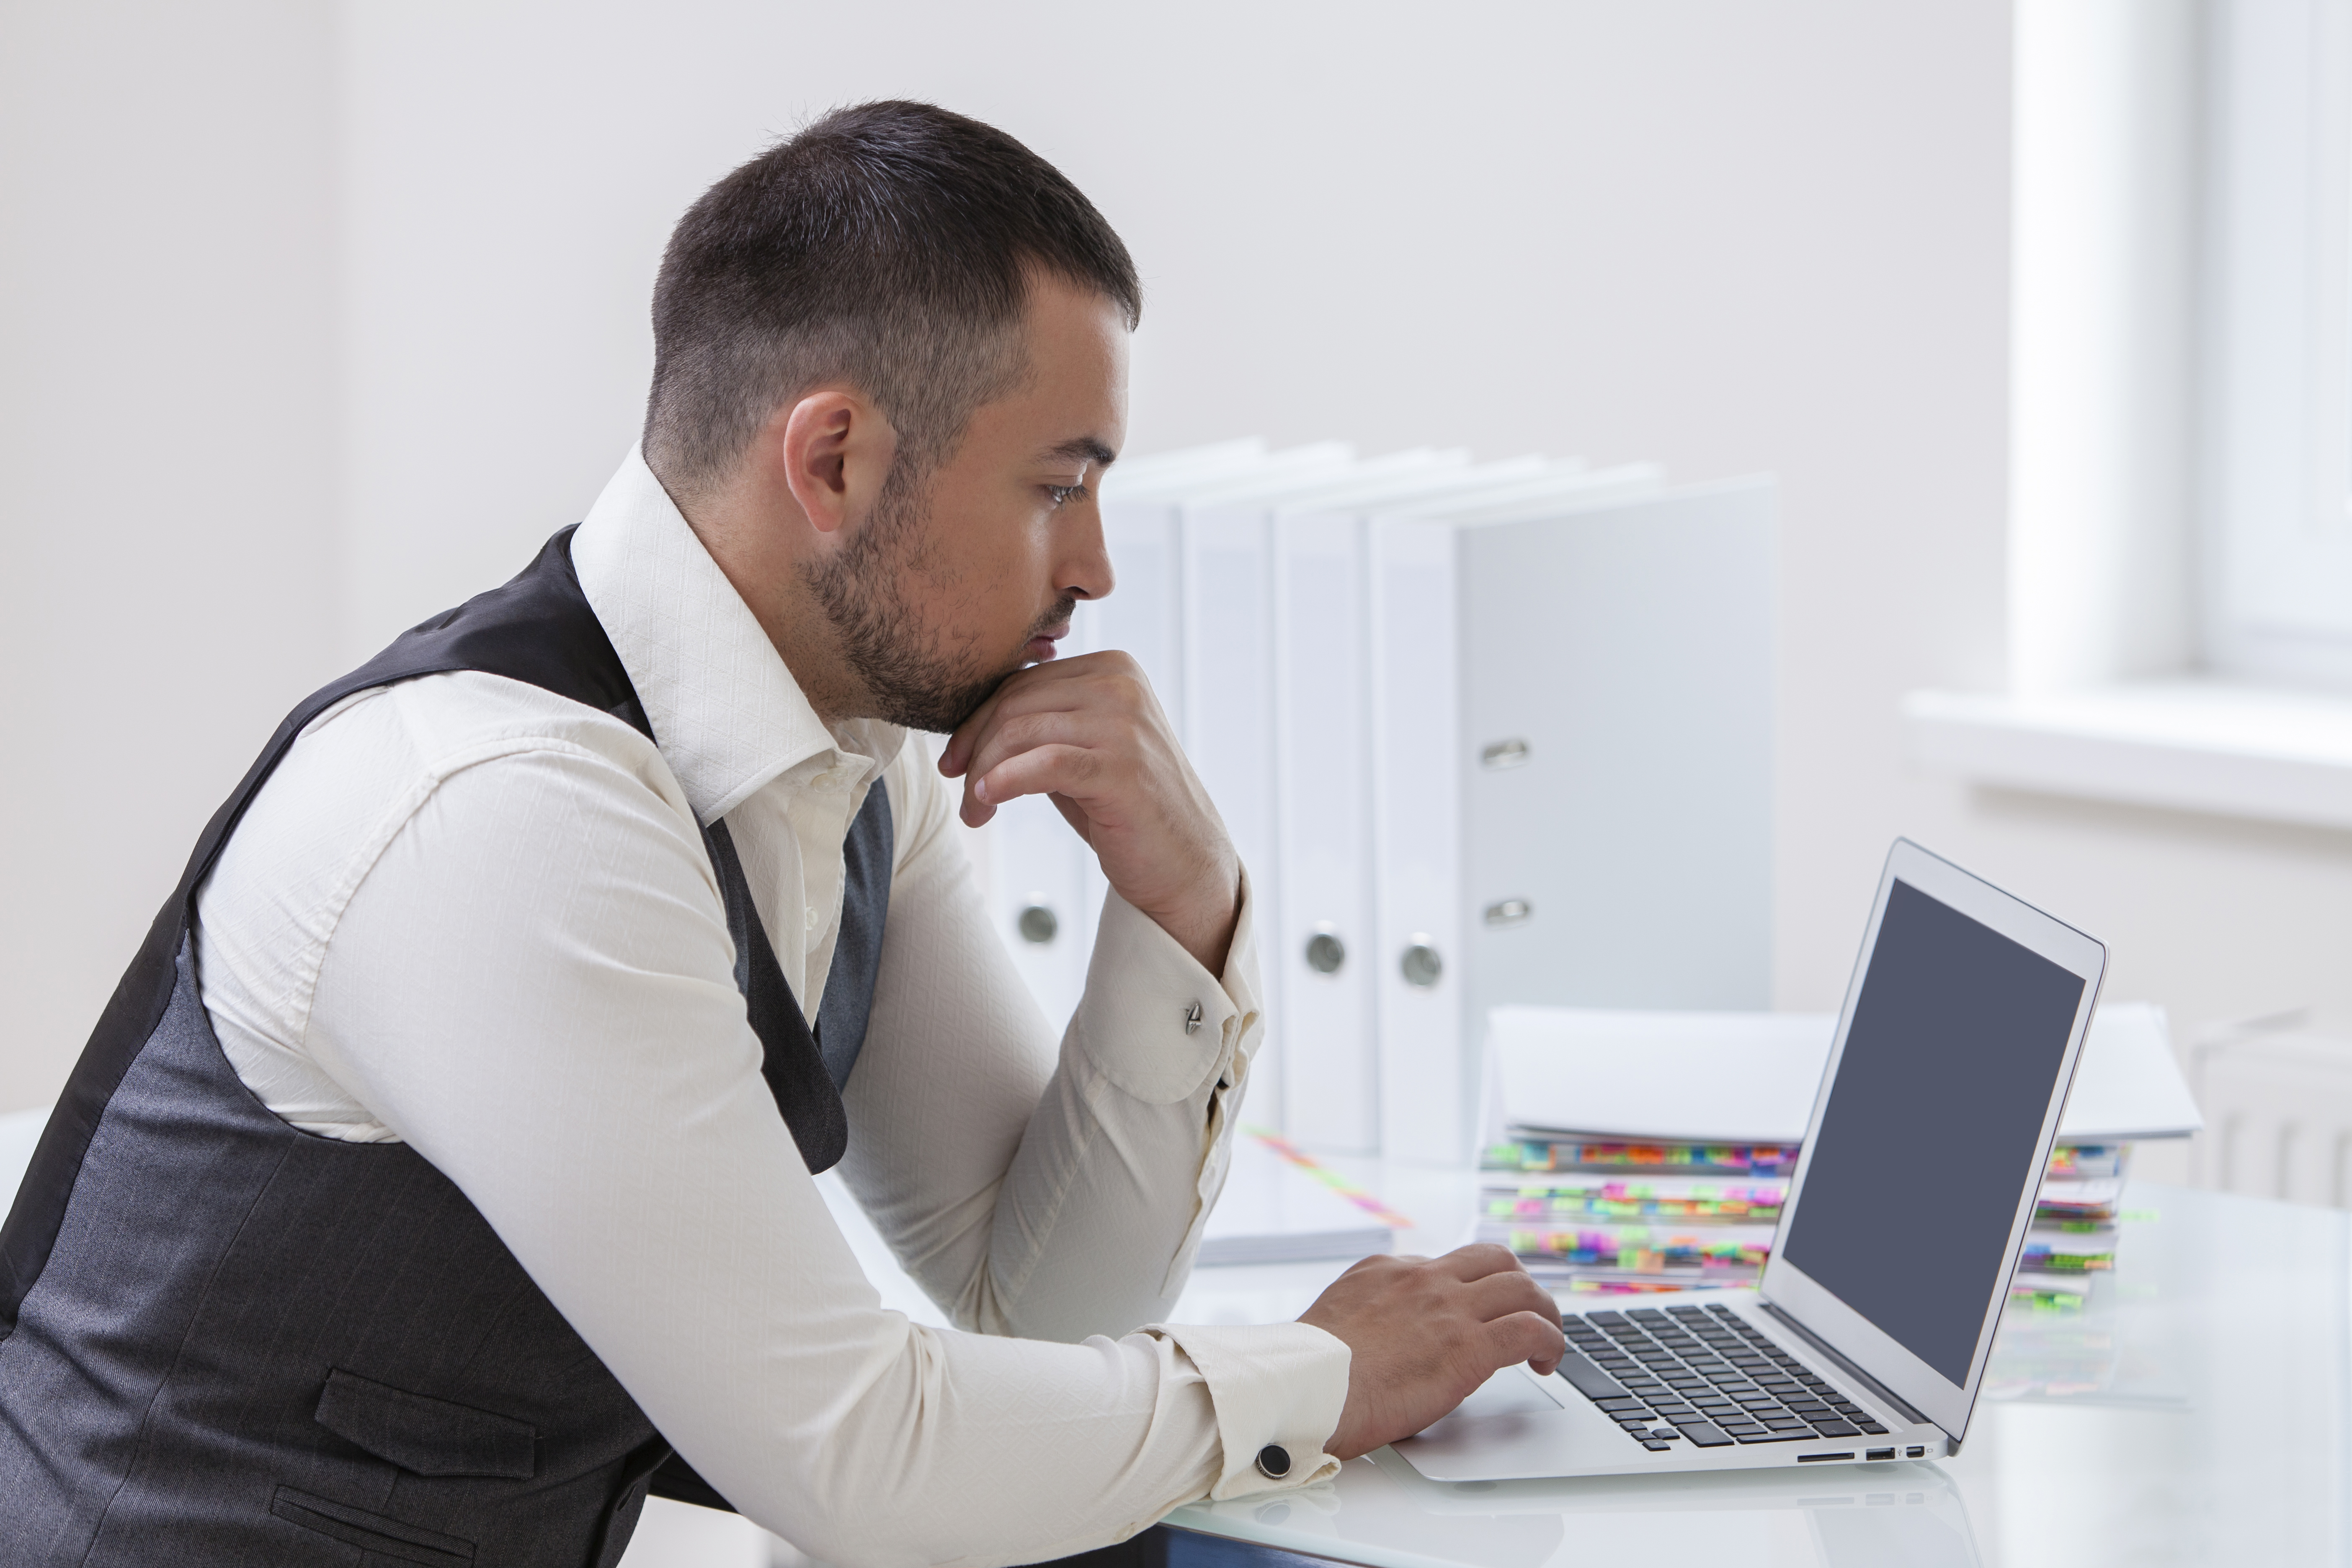 Office ergonomics could help this man who is hunched over a laptop.